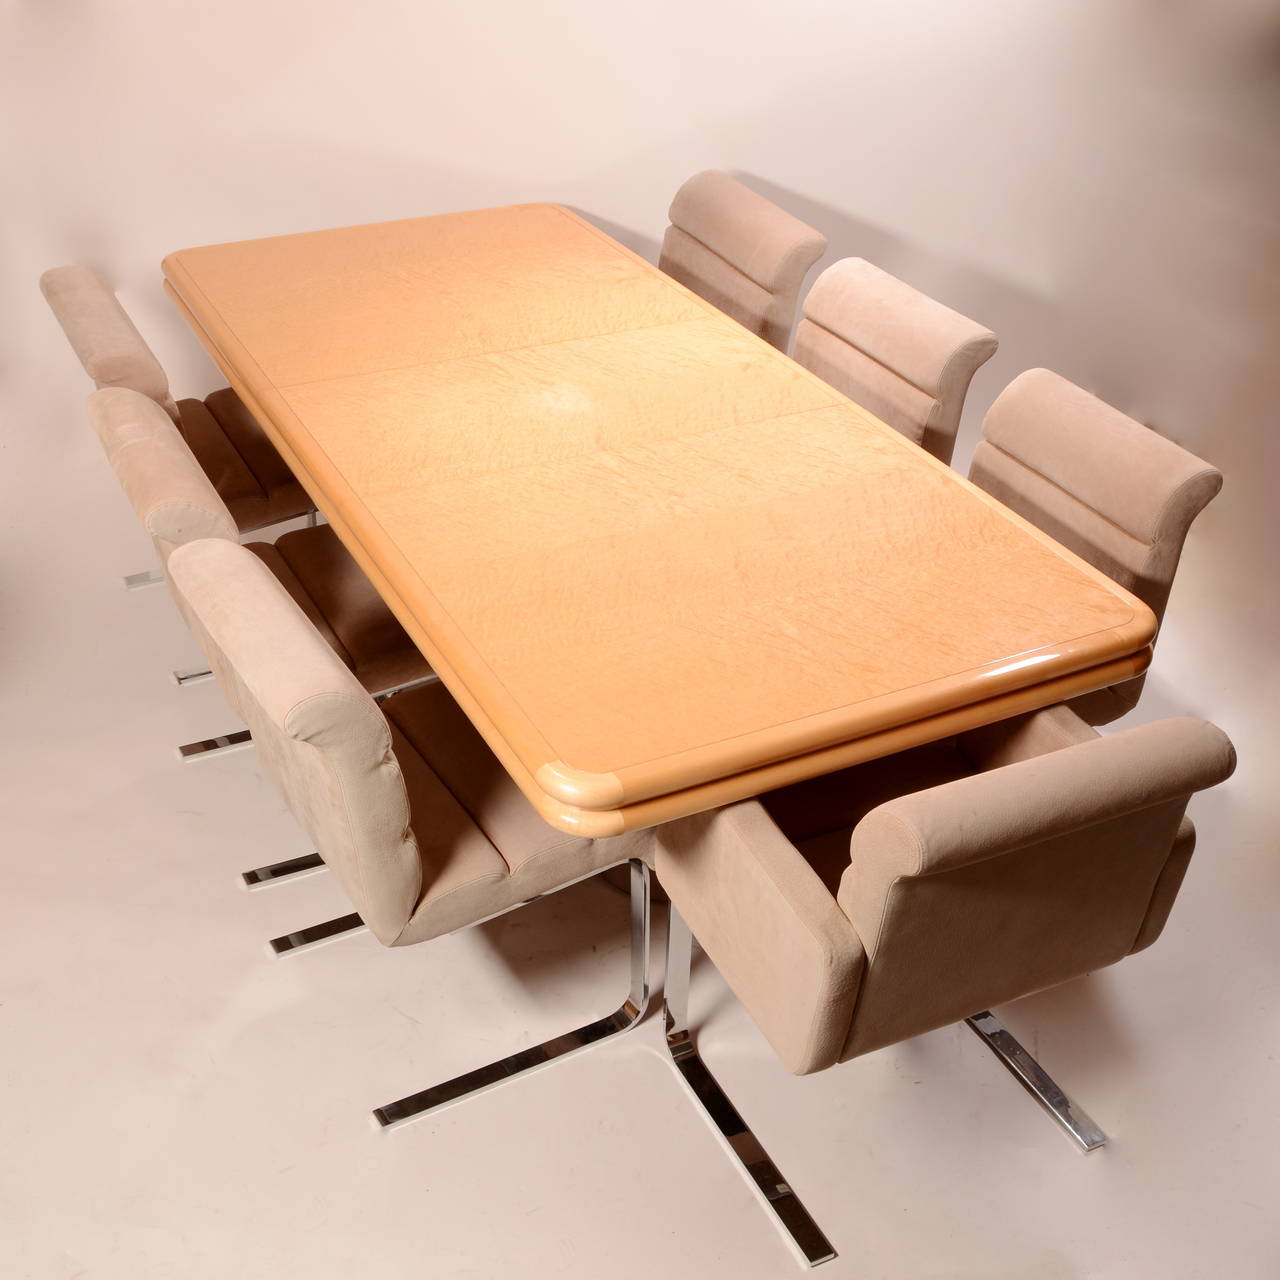 Burl Maple Dining Table Designed by Stanley Jay Friedman for Brueton For Sale 4